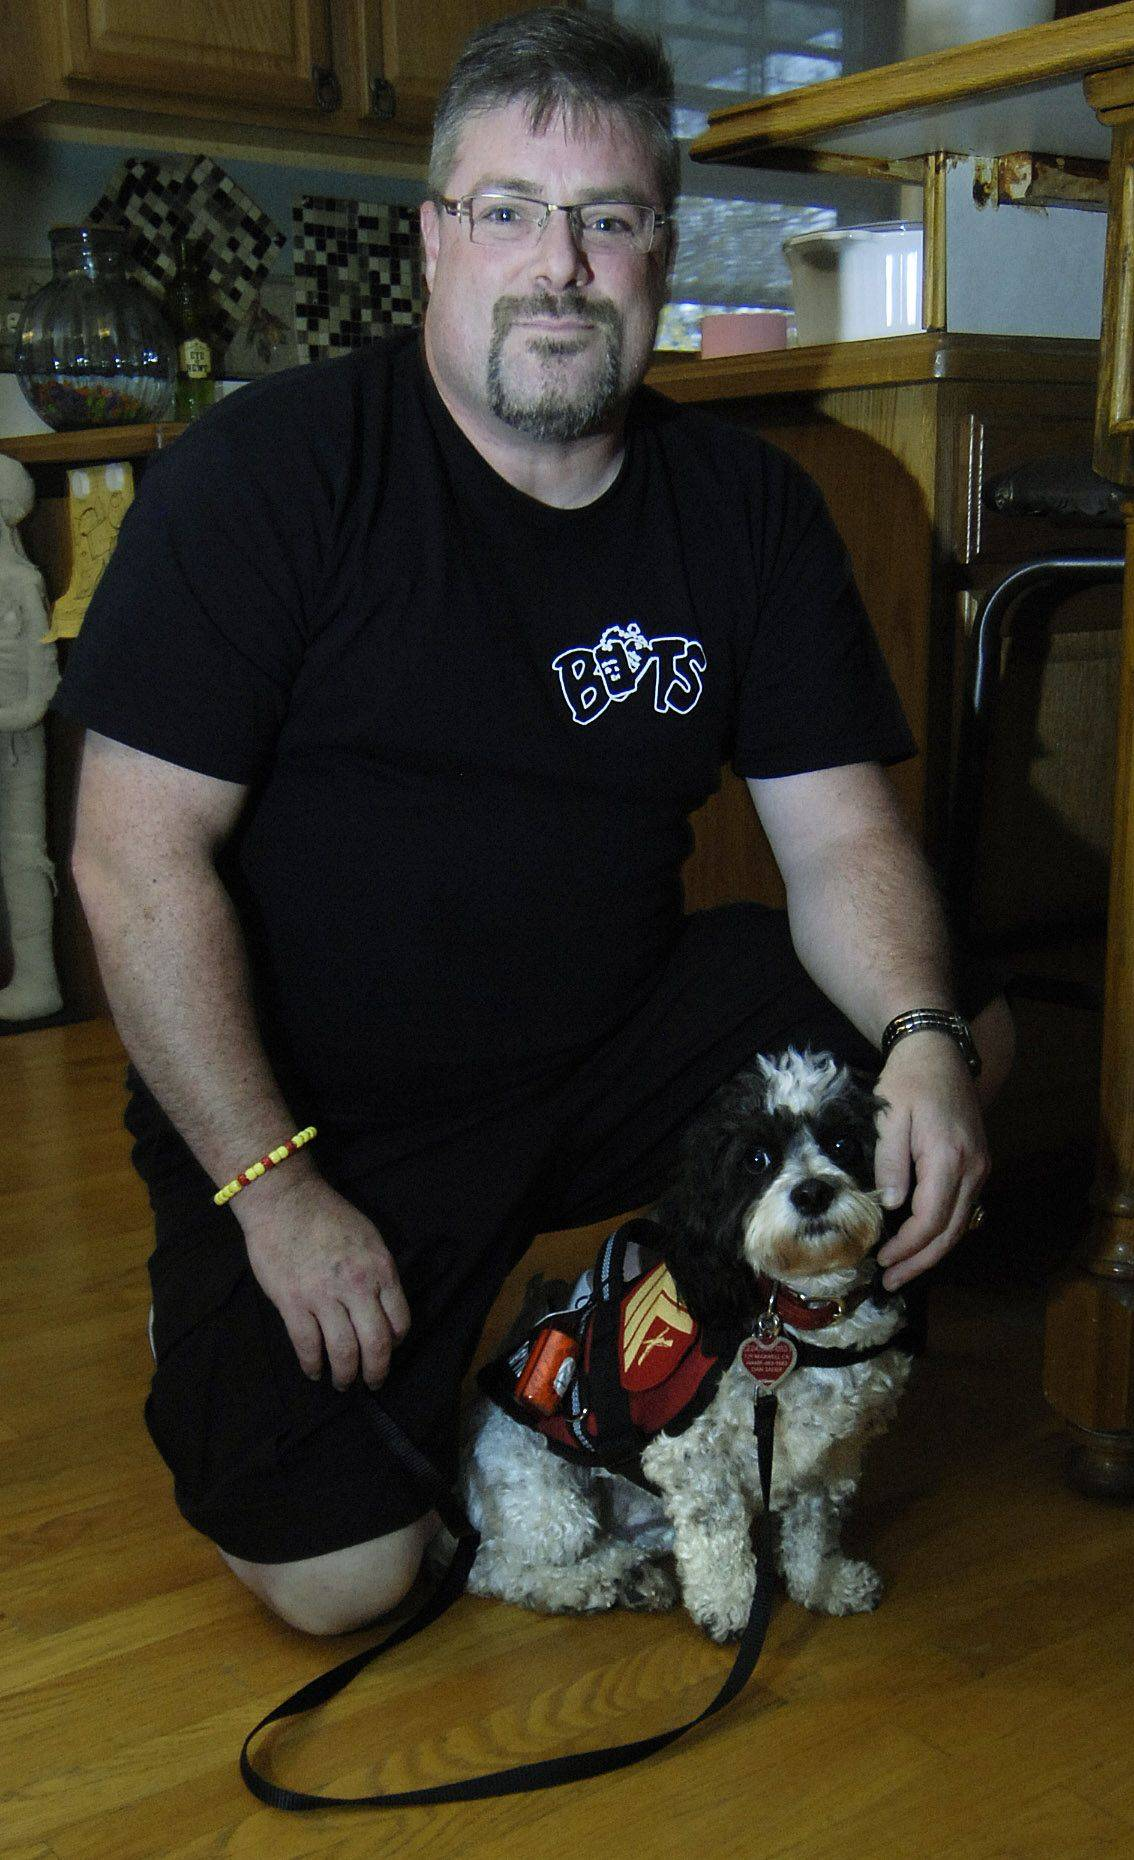 Dan Sauer poses with his service dog, Chloe, in his Hampshire home. He is a Desert Storm veteran and is living with PTSD.